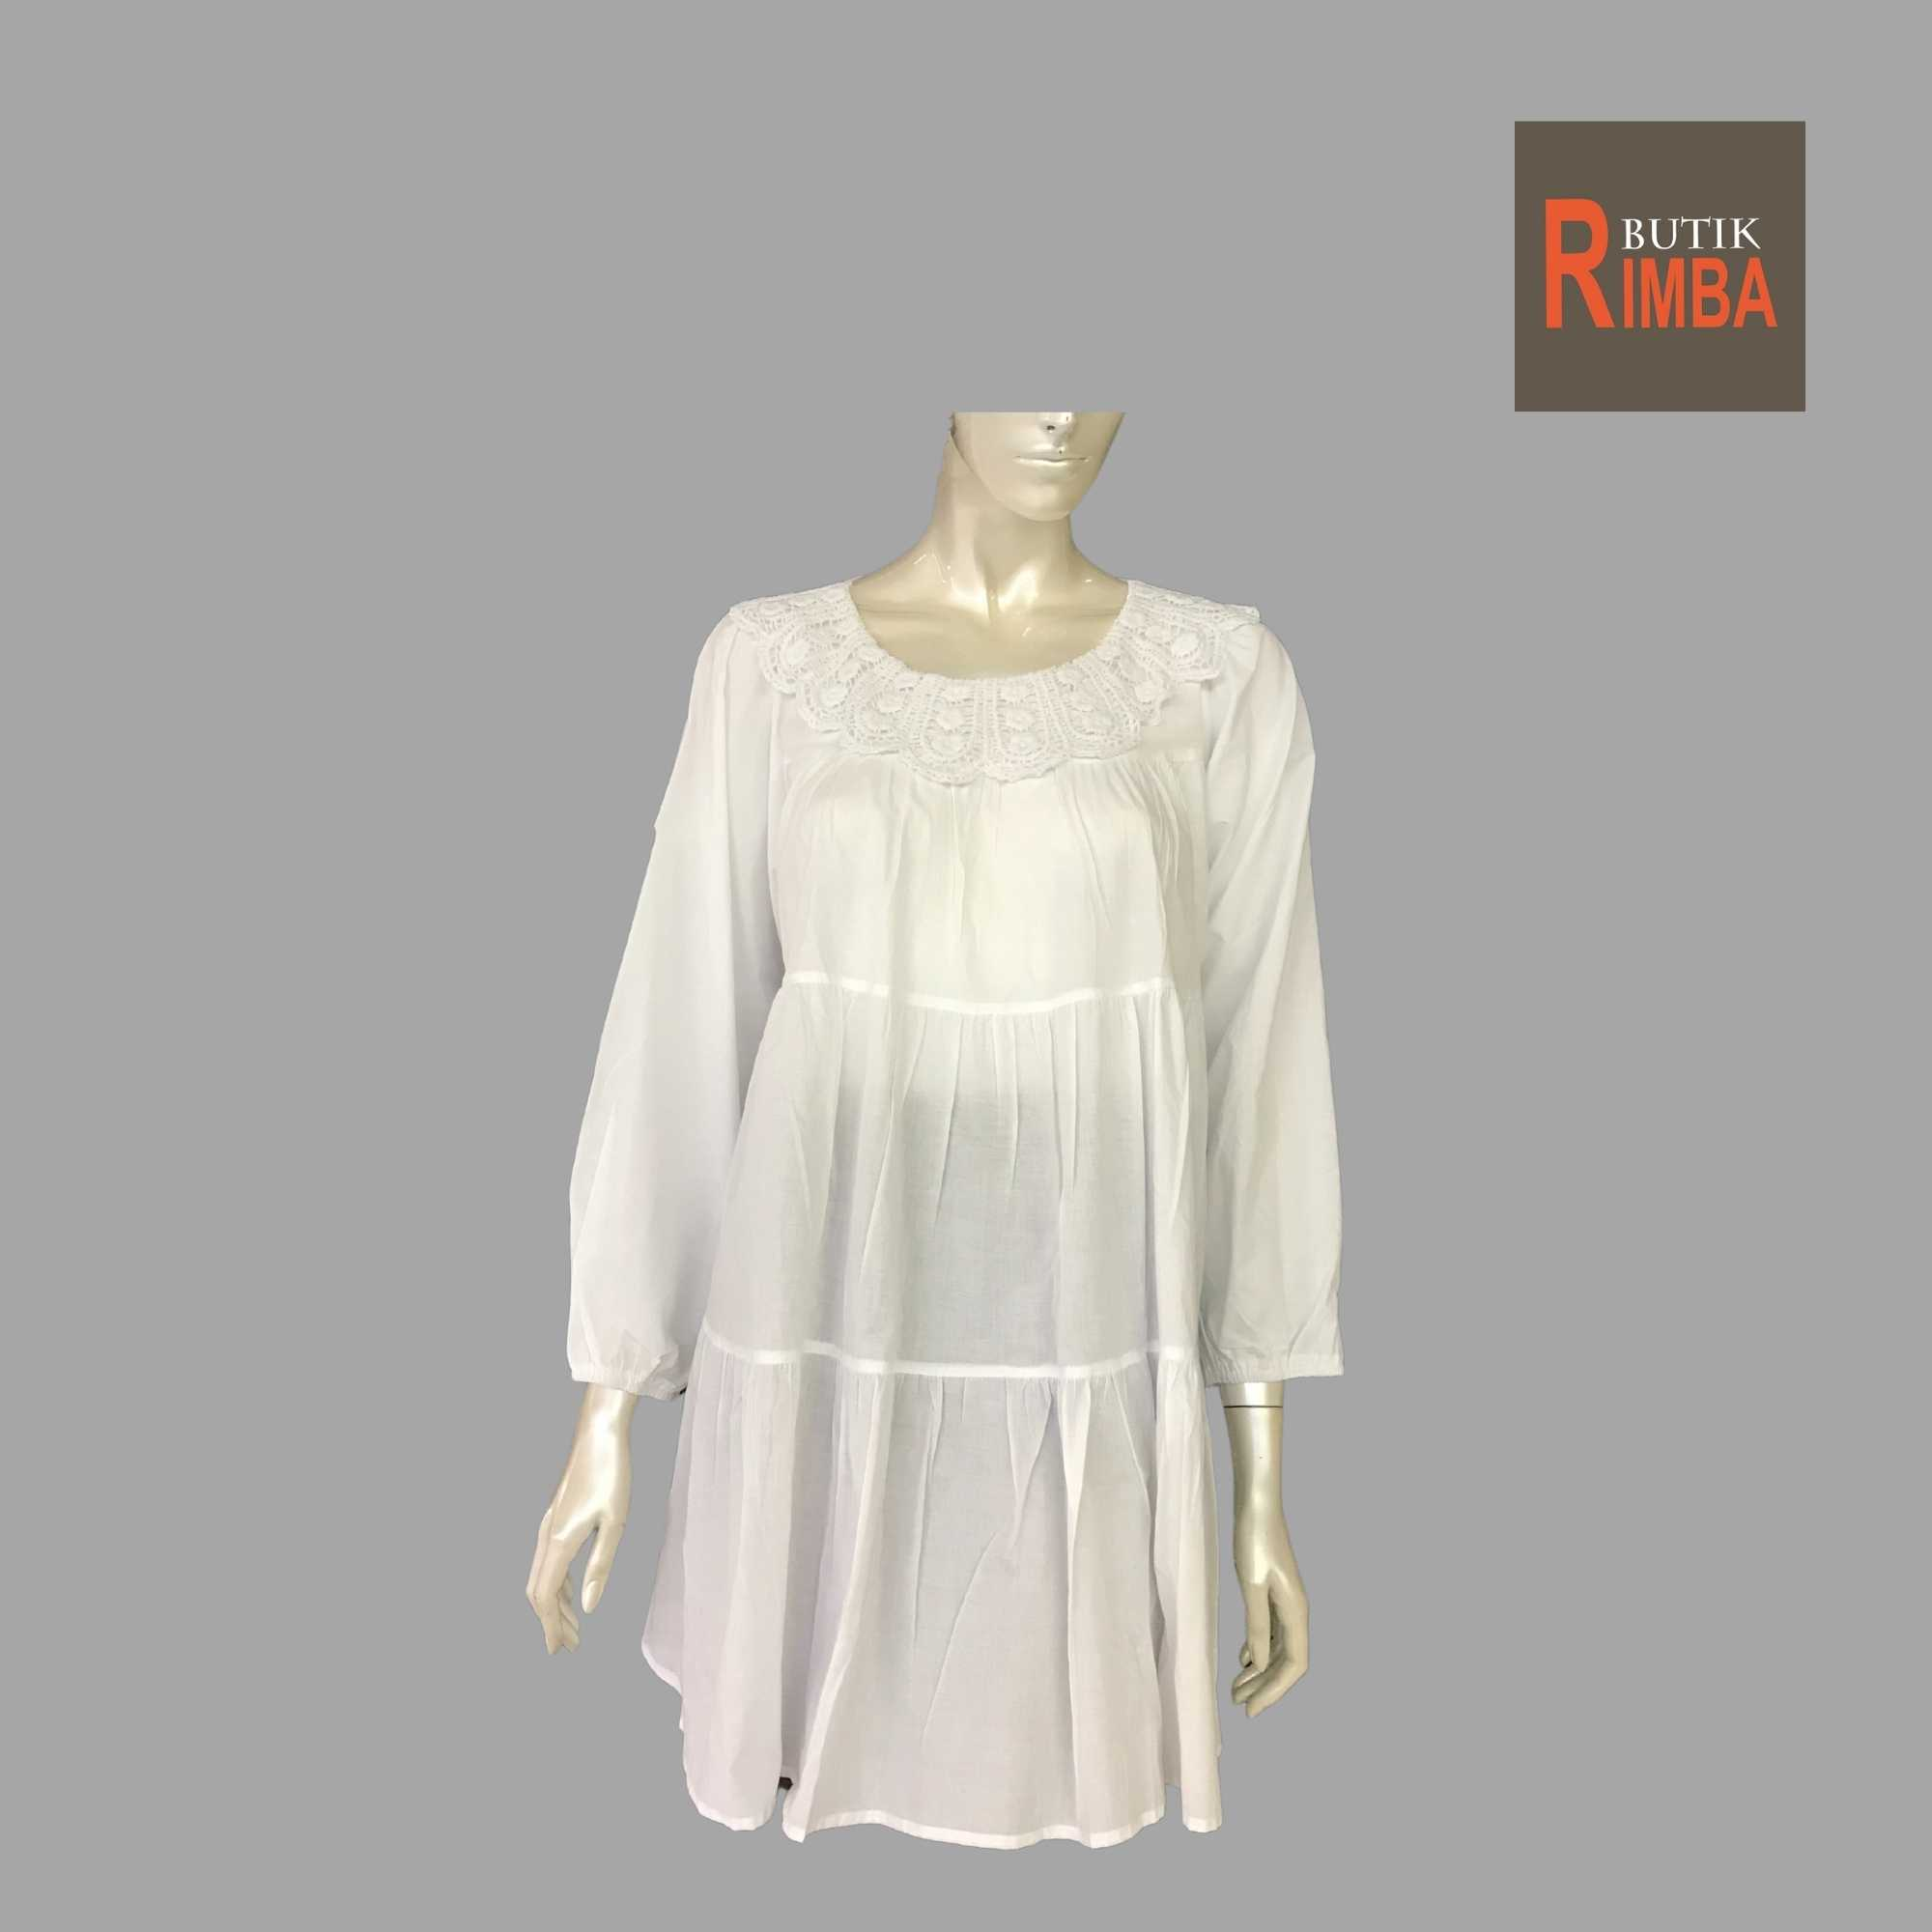 WOMEN CASUAL AND COMFORTABLE WHITE BLOUSE COTTON FREE SIZE PATTERN 23